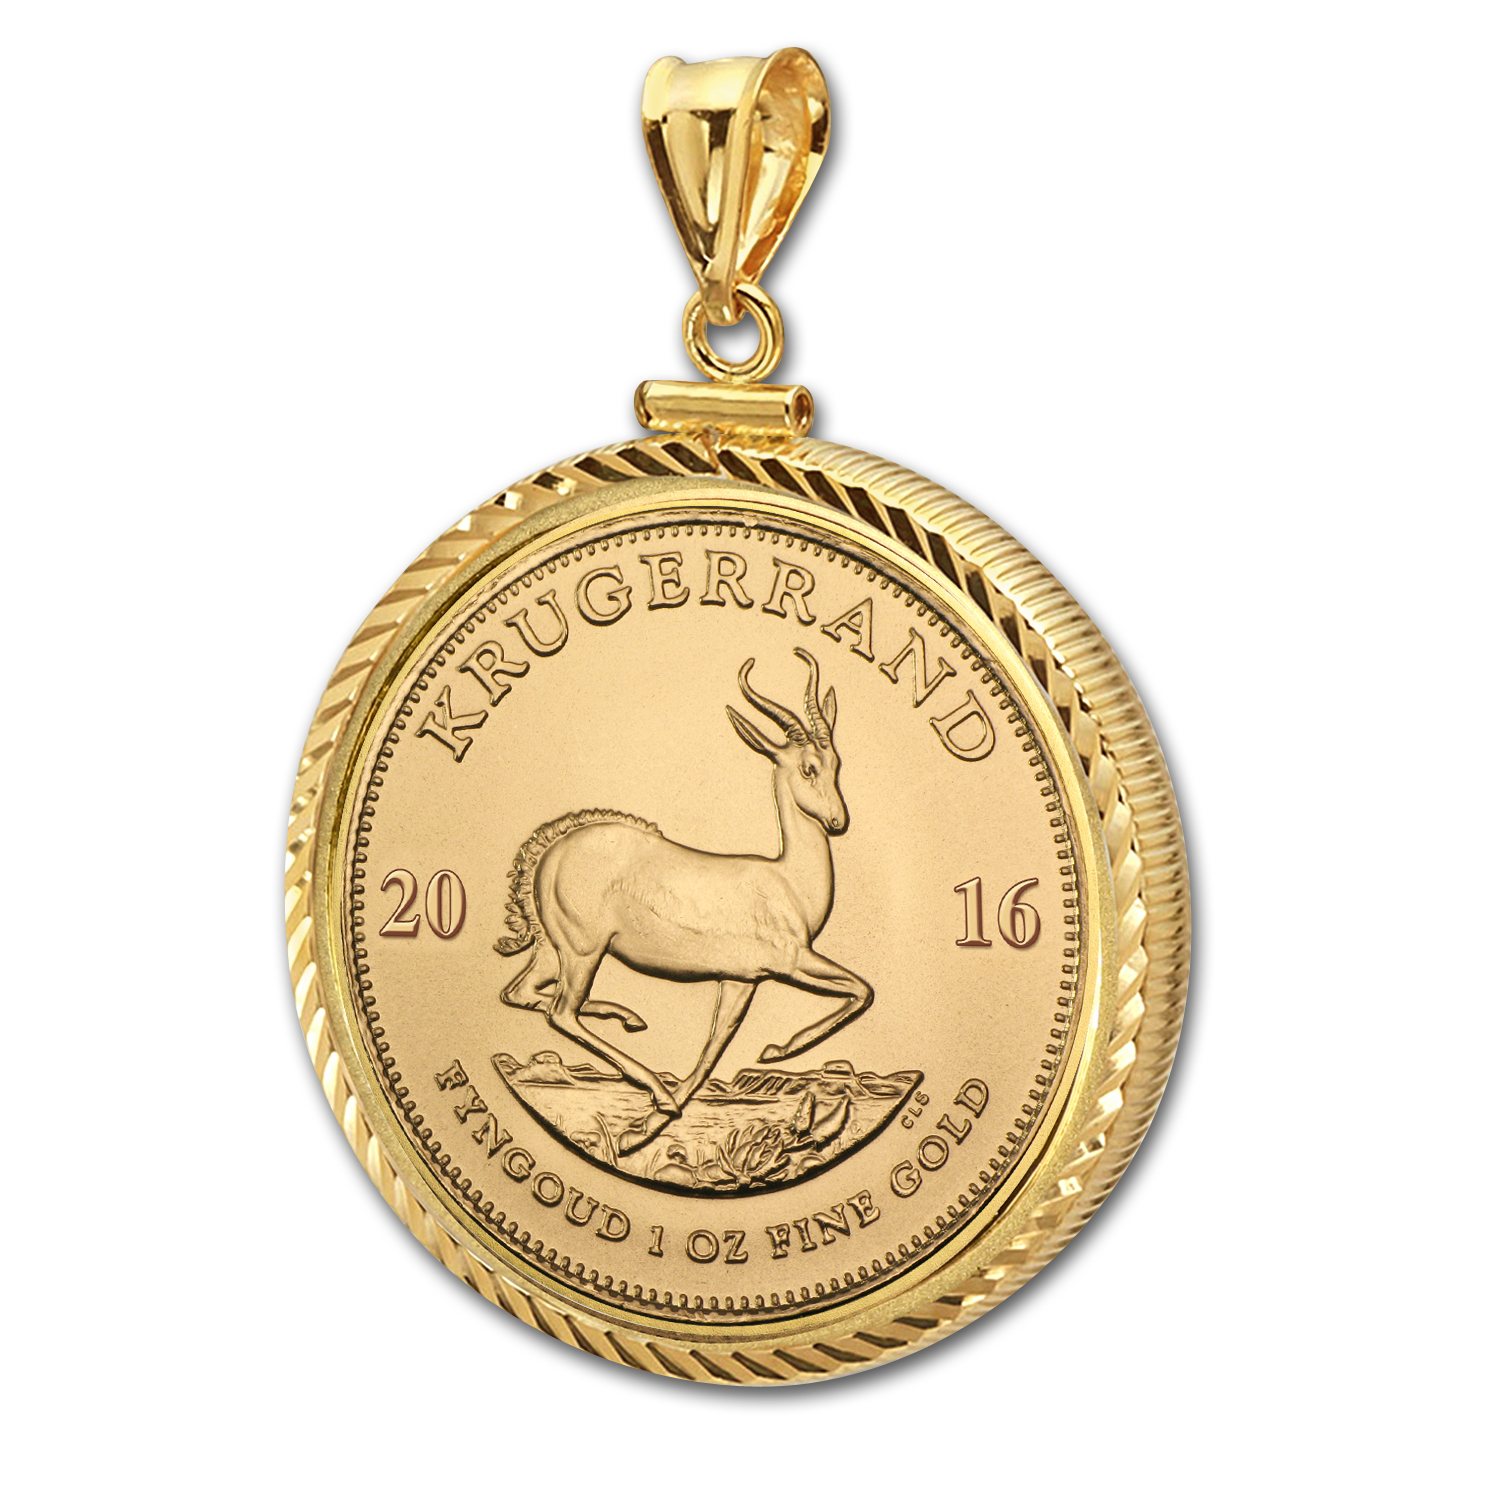 2016 1 oz Gold Krugerrand Pendant (Diamond-ScrewTop Bezel)